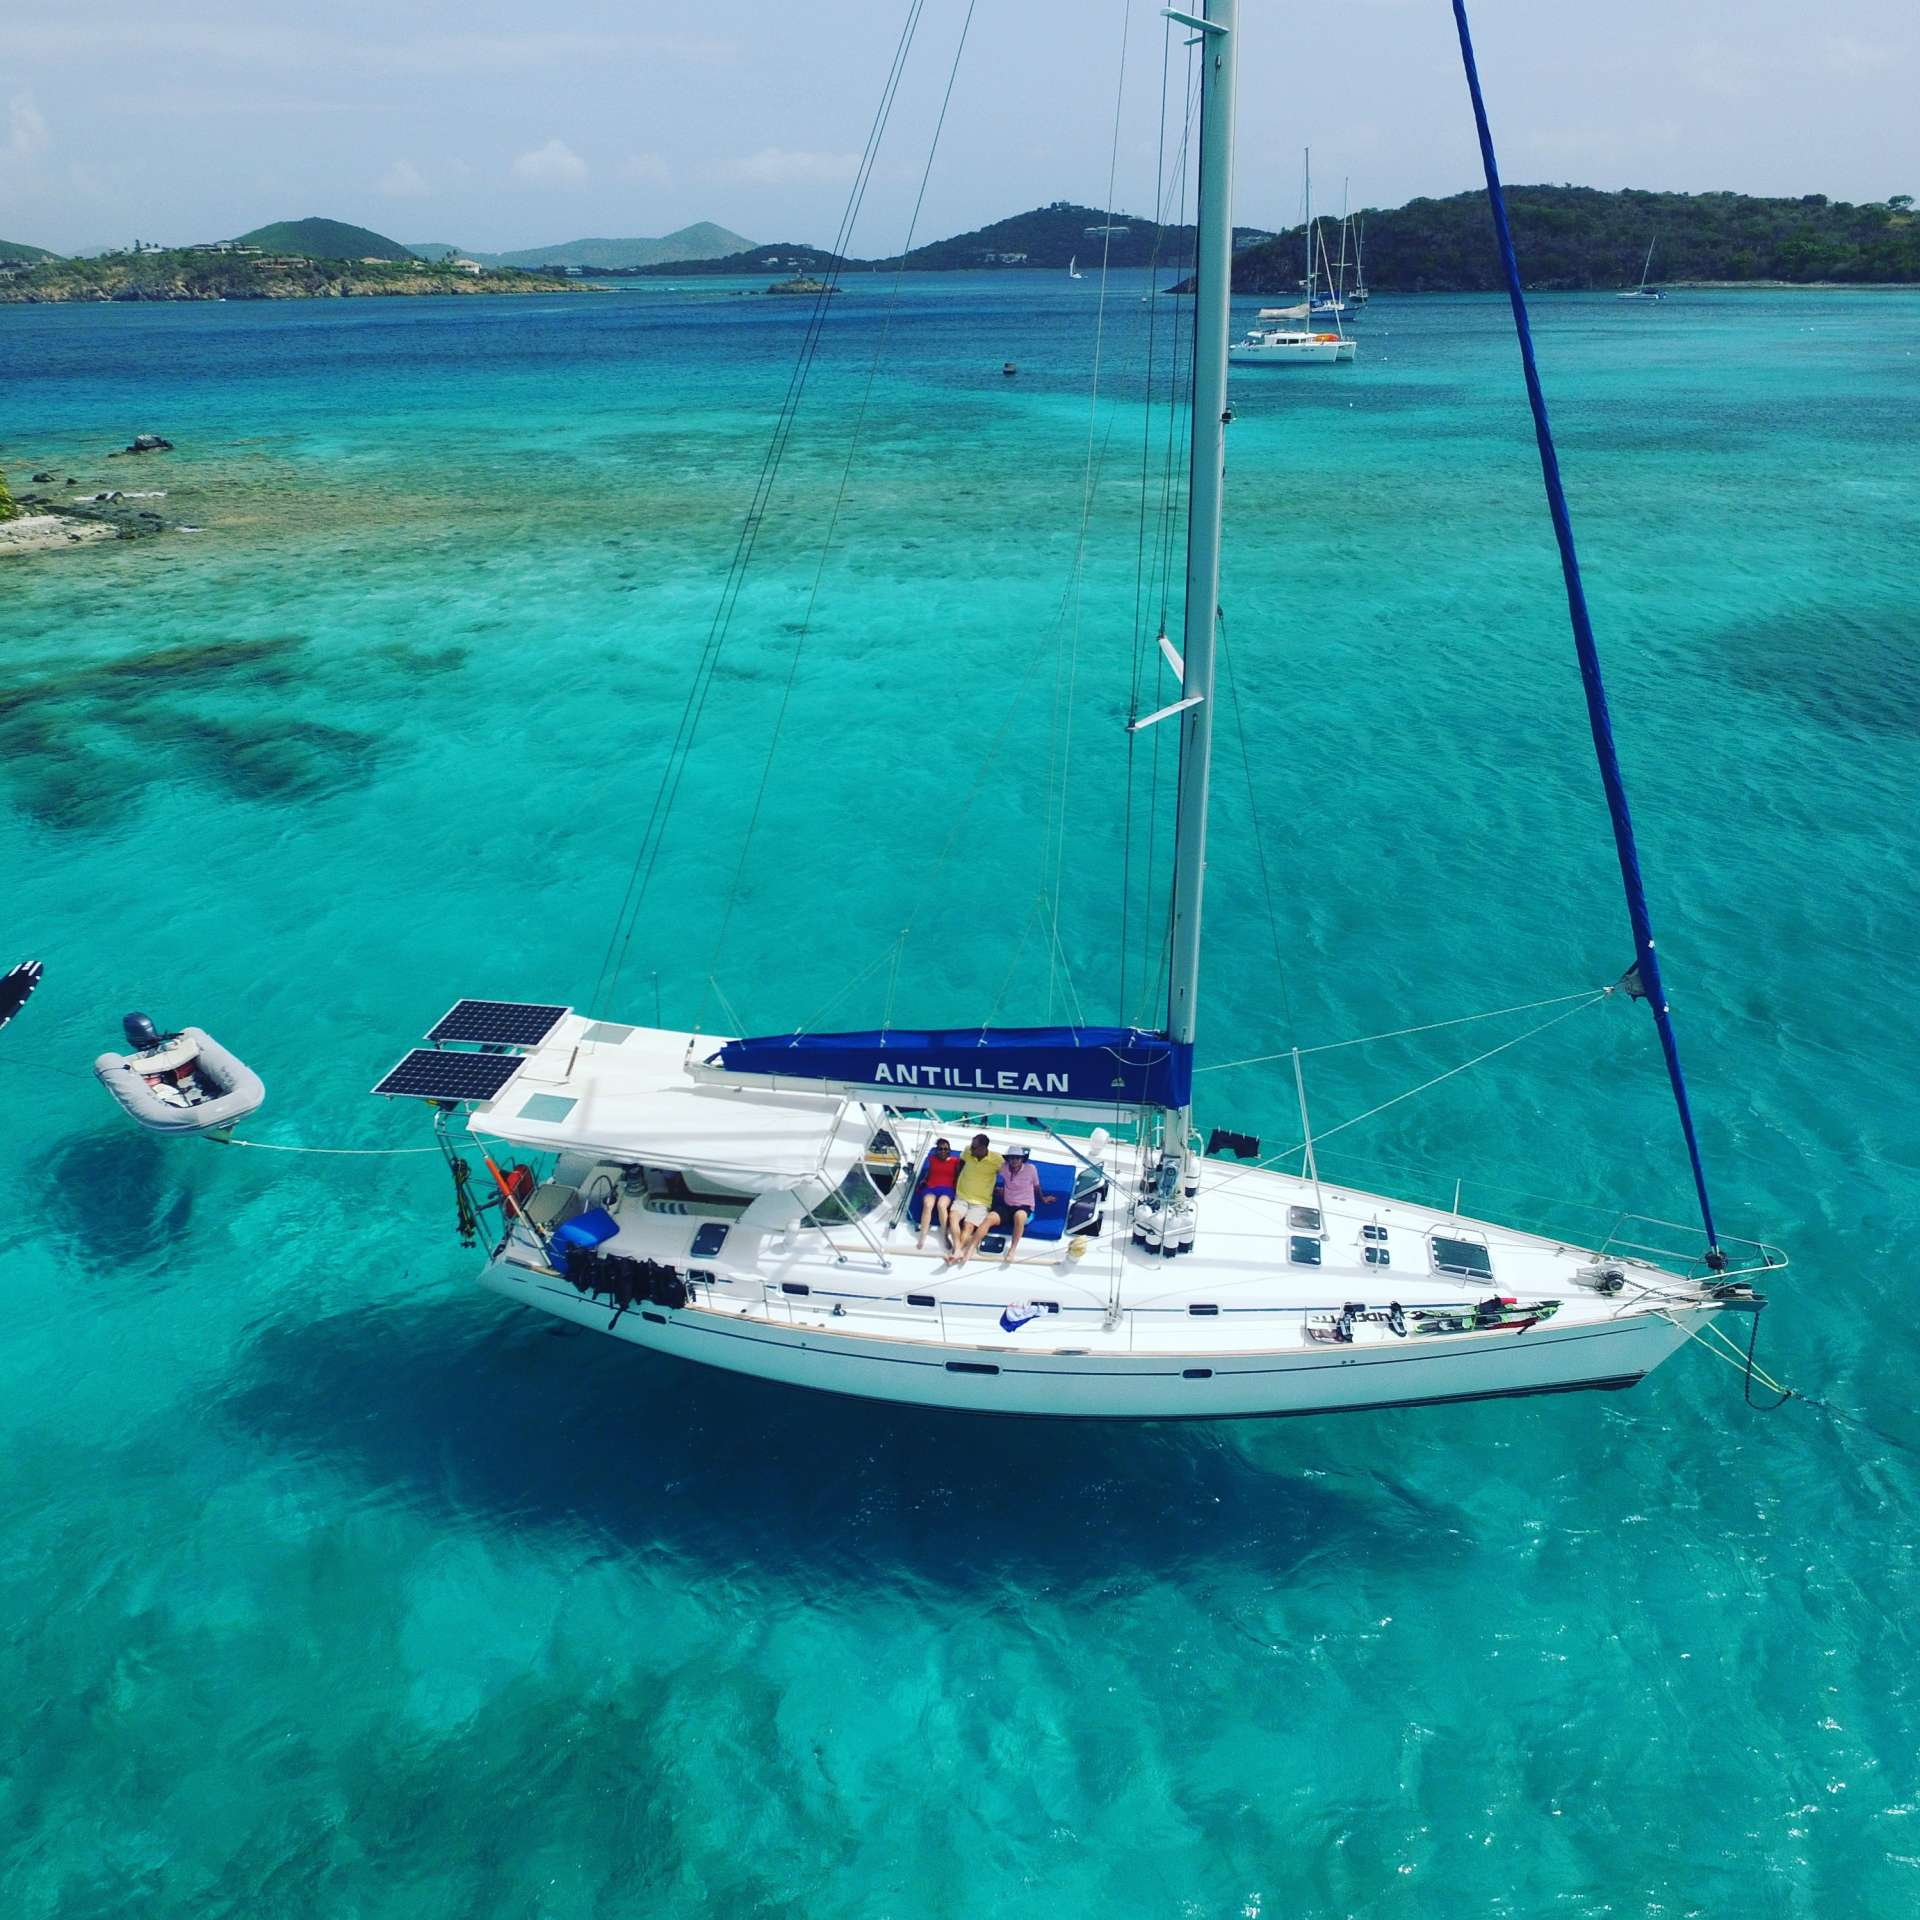 Charter with ANTILLEAN on compassyachtcharters.com